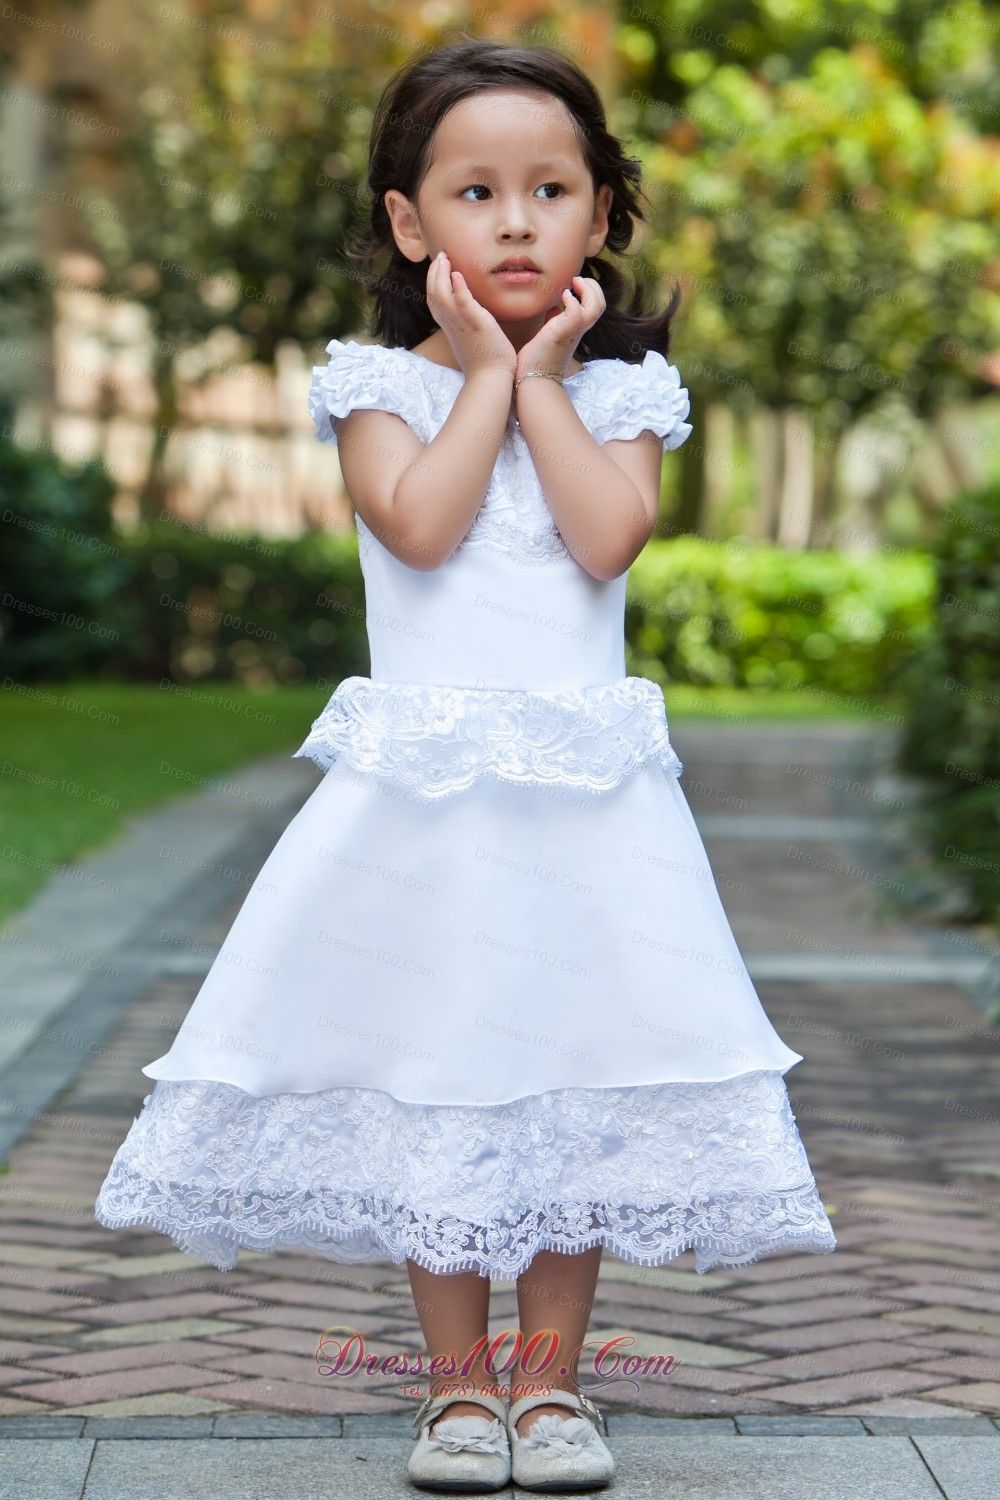 Modern flower girl dress in spencer party dresses celebrity dresses